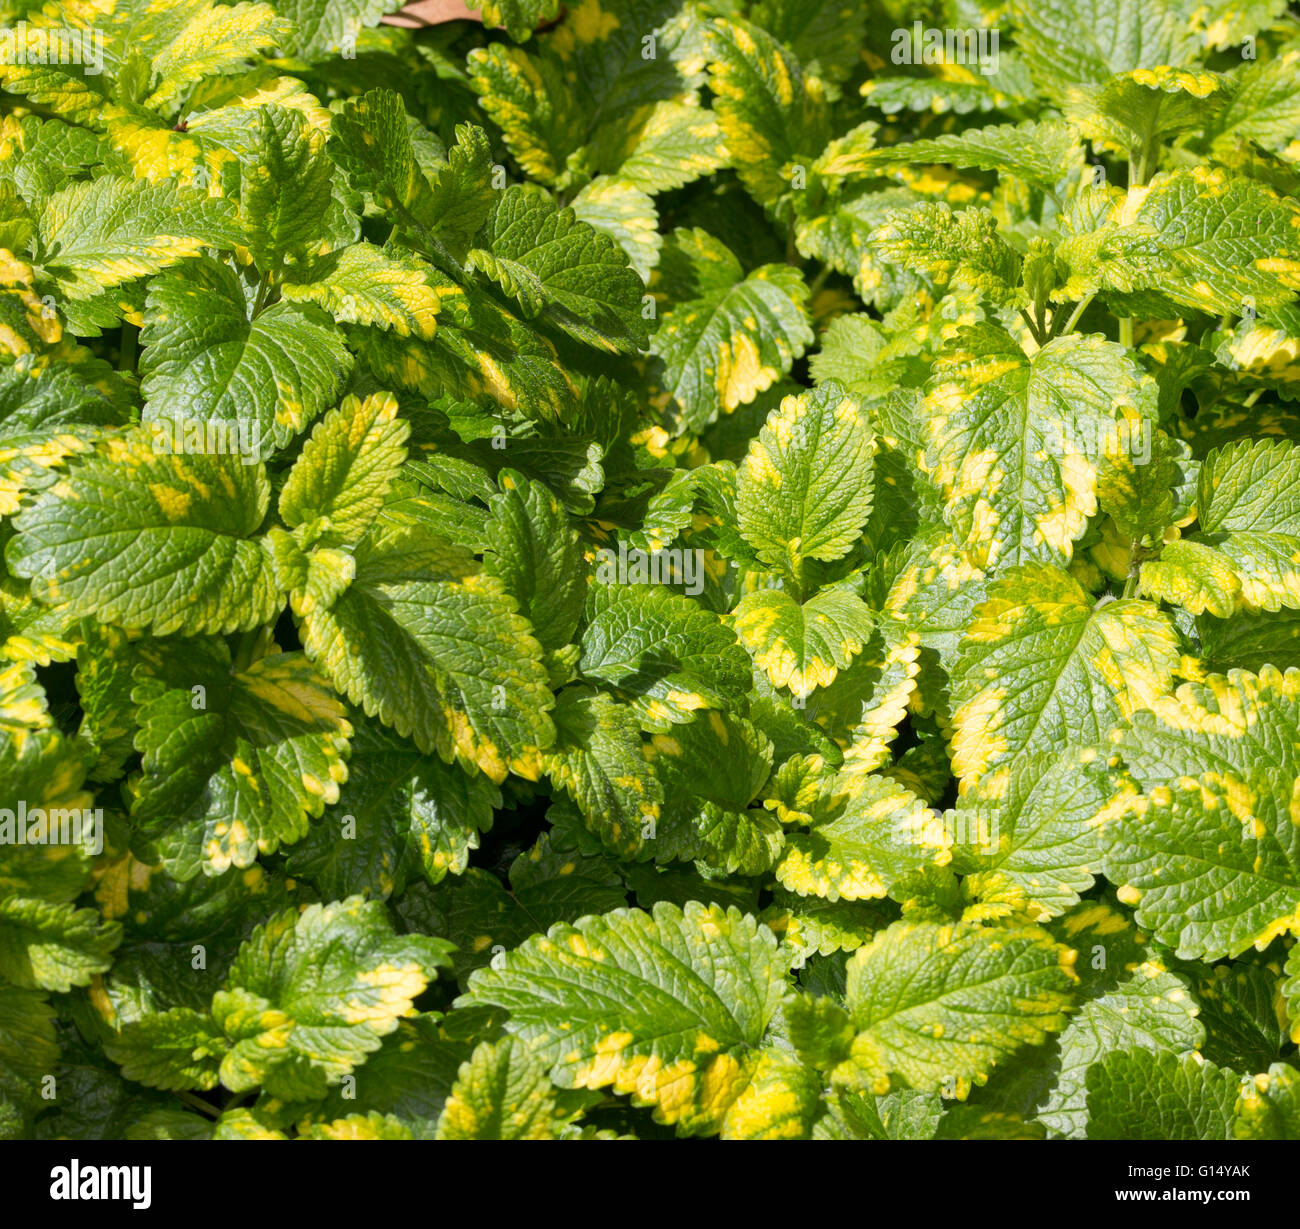 Gold variegated foliage of the hardy perennial pot herb Melissa officinalis 'Aurea', golden lemon balm Stock Photo